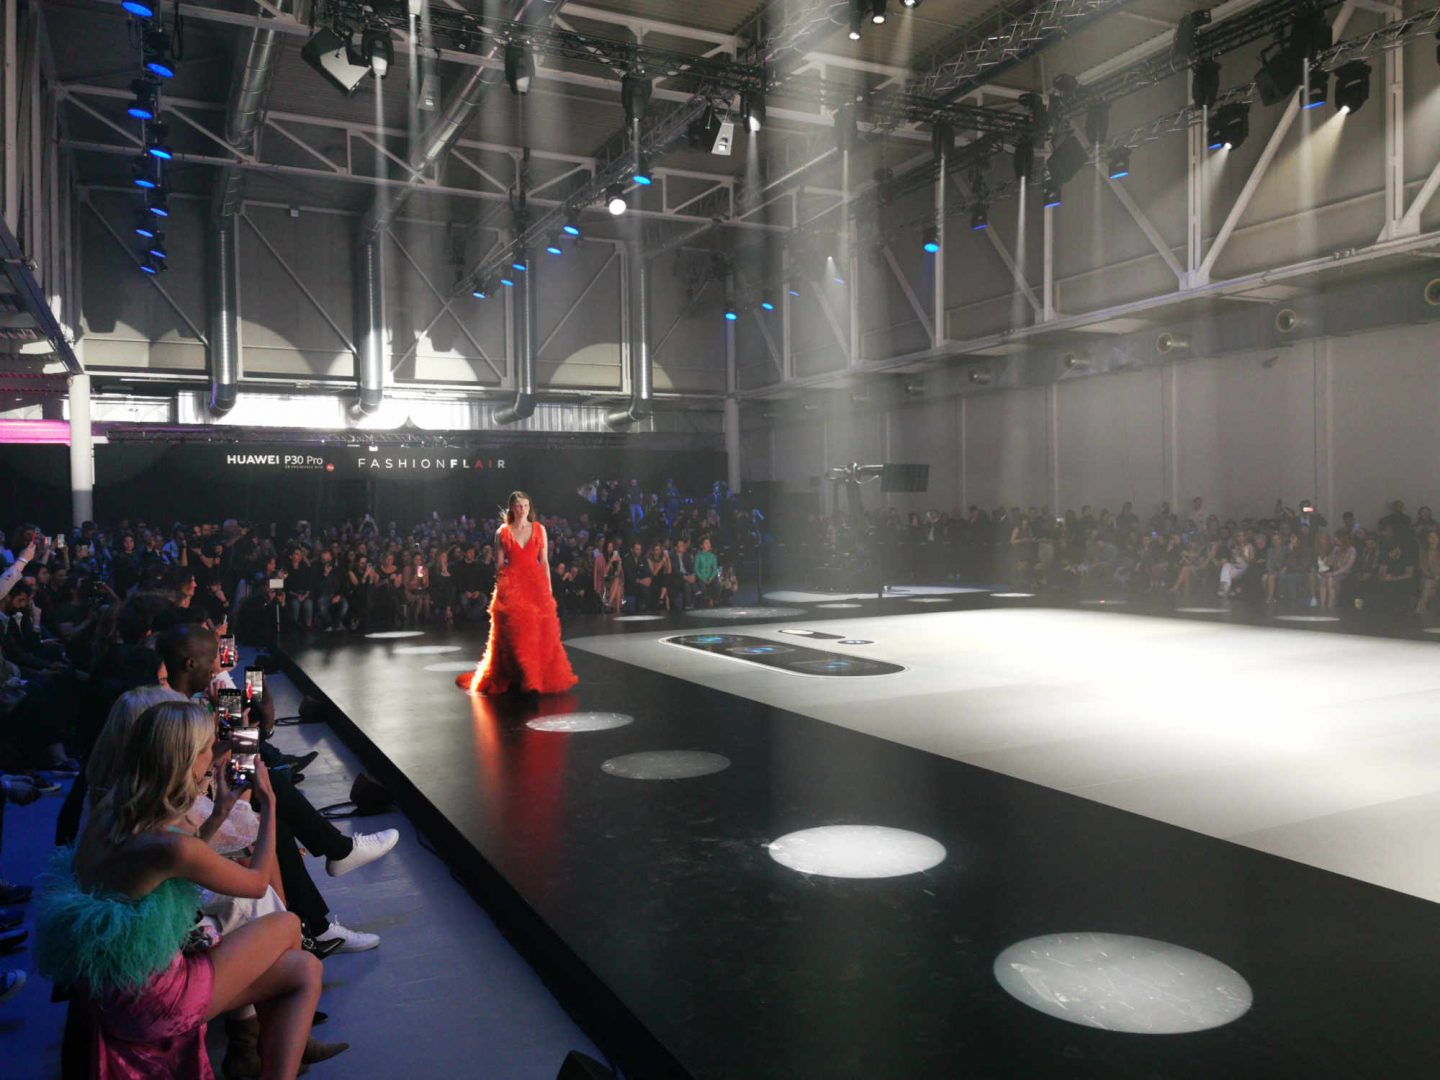 LFM Group per Huawei 2019 - The stage was made with a special selection of top materials